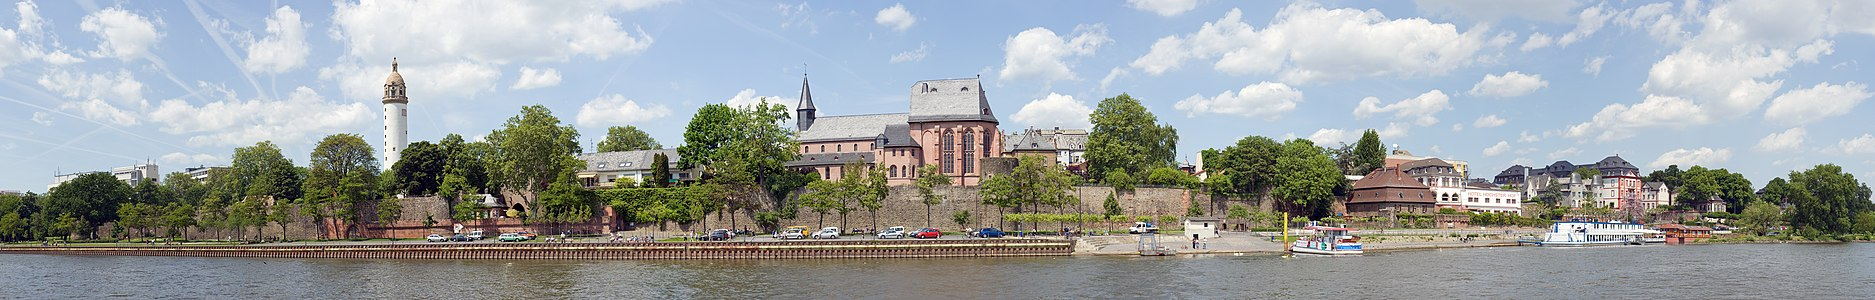 Frankfurt on the Main: Waterside of the district Hoechst as seen from the southern side of the Main